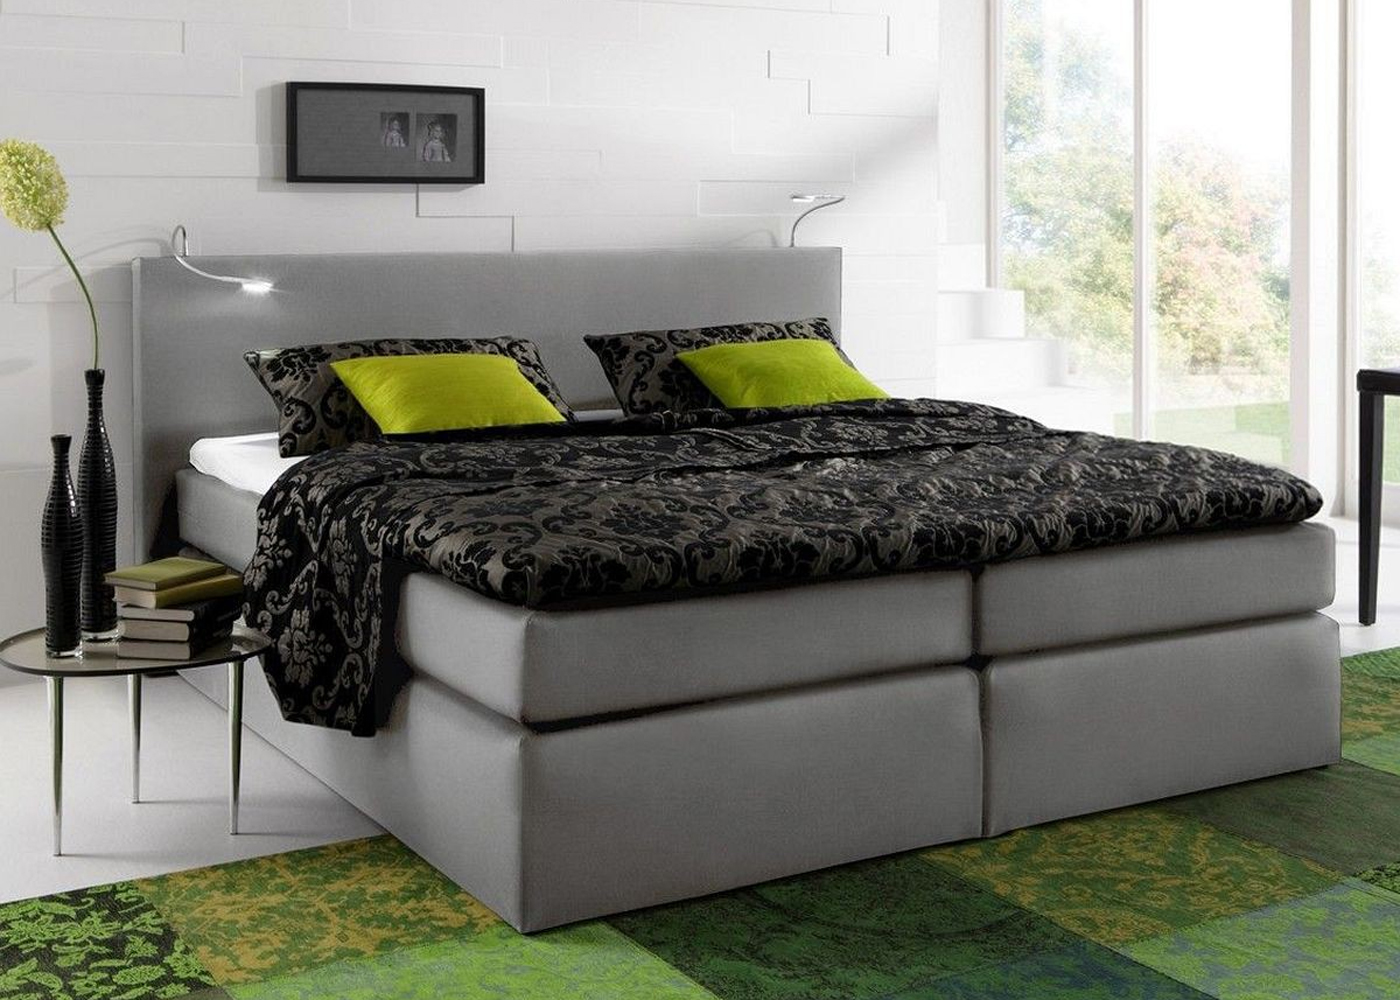 Boxspringbett Your Home Boxspringbett Oder Matratze Boxspringbett 180x200 160x200